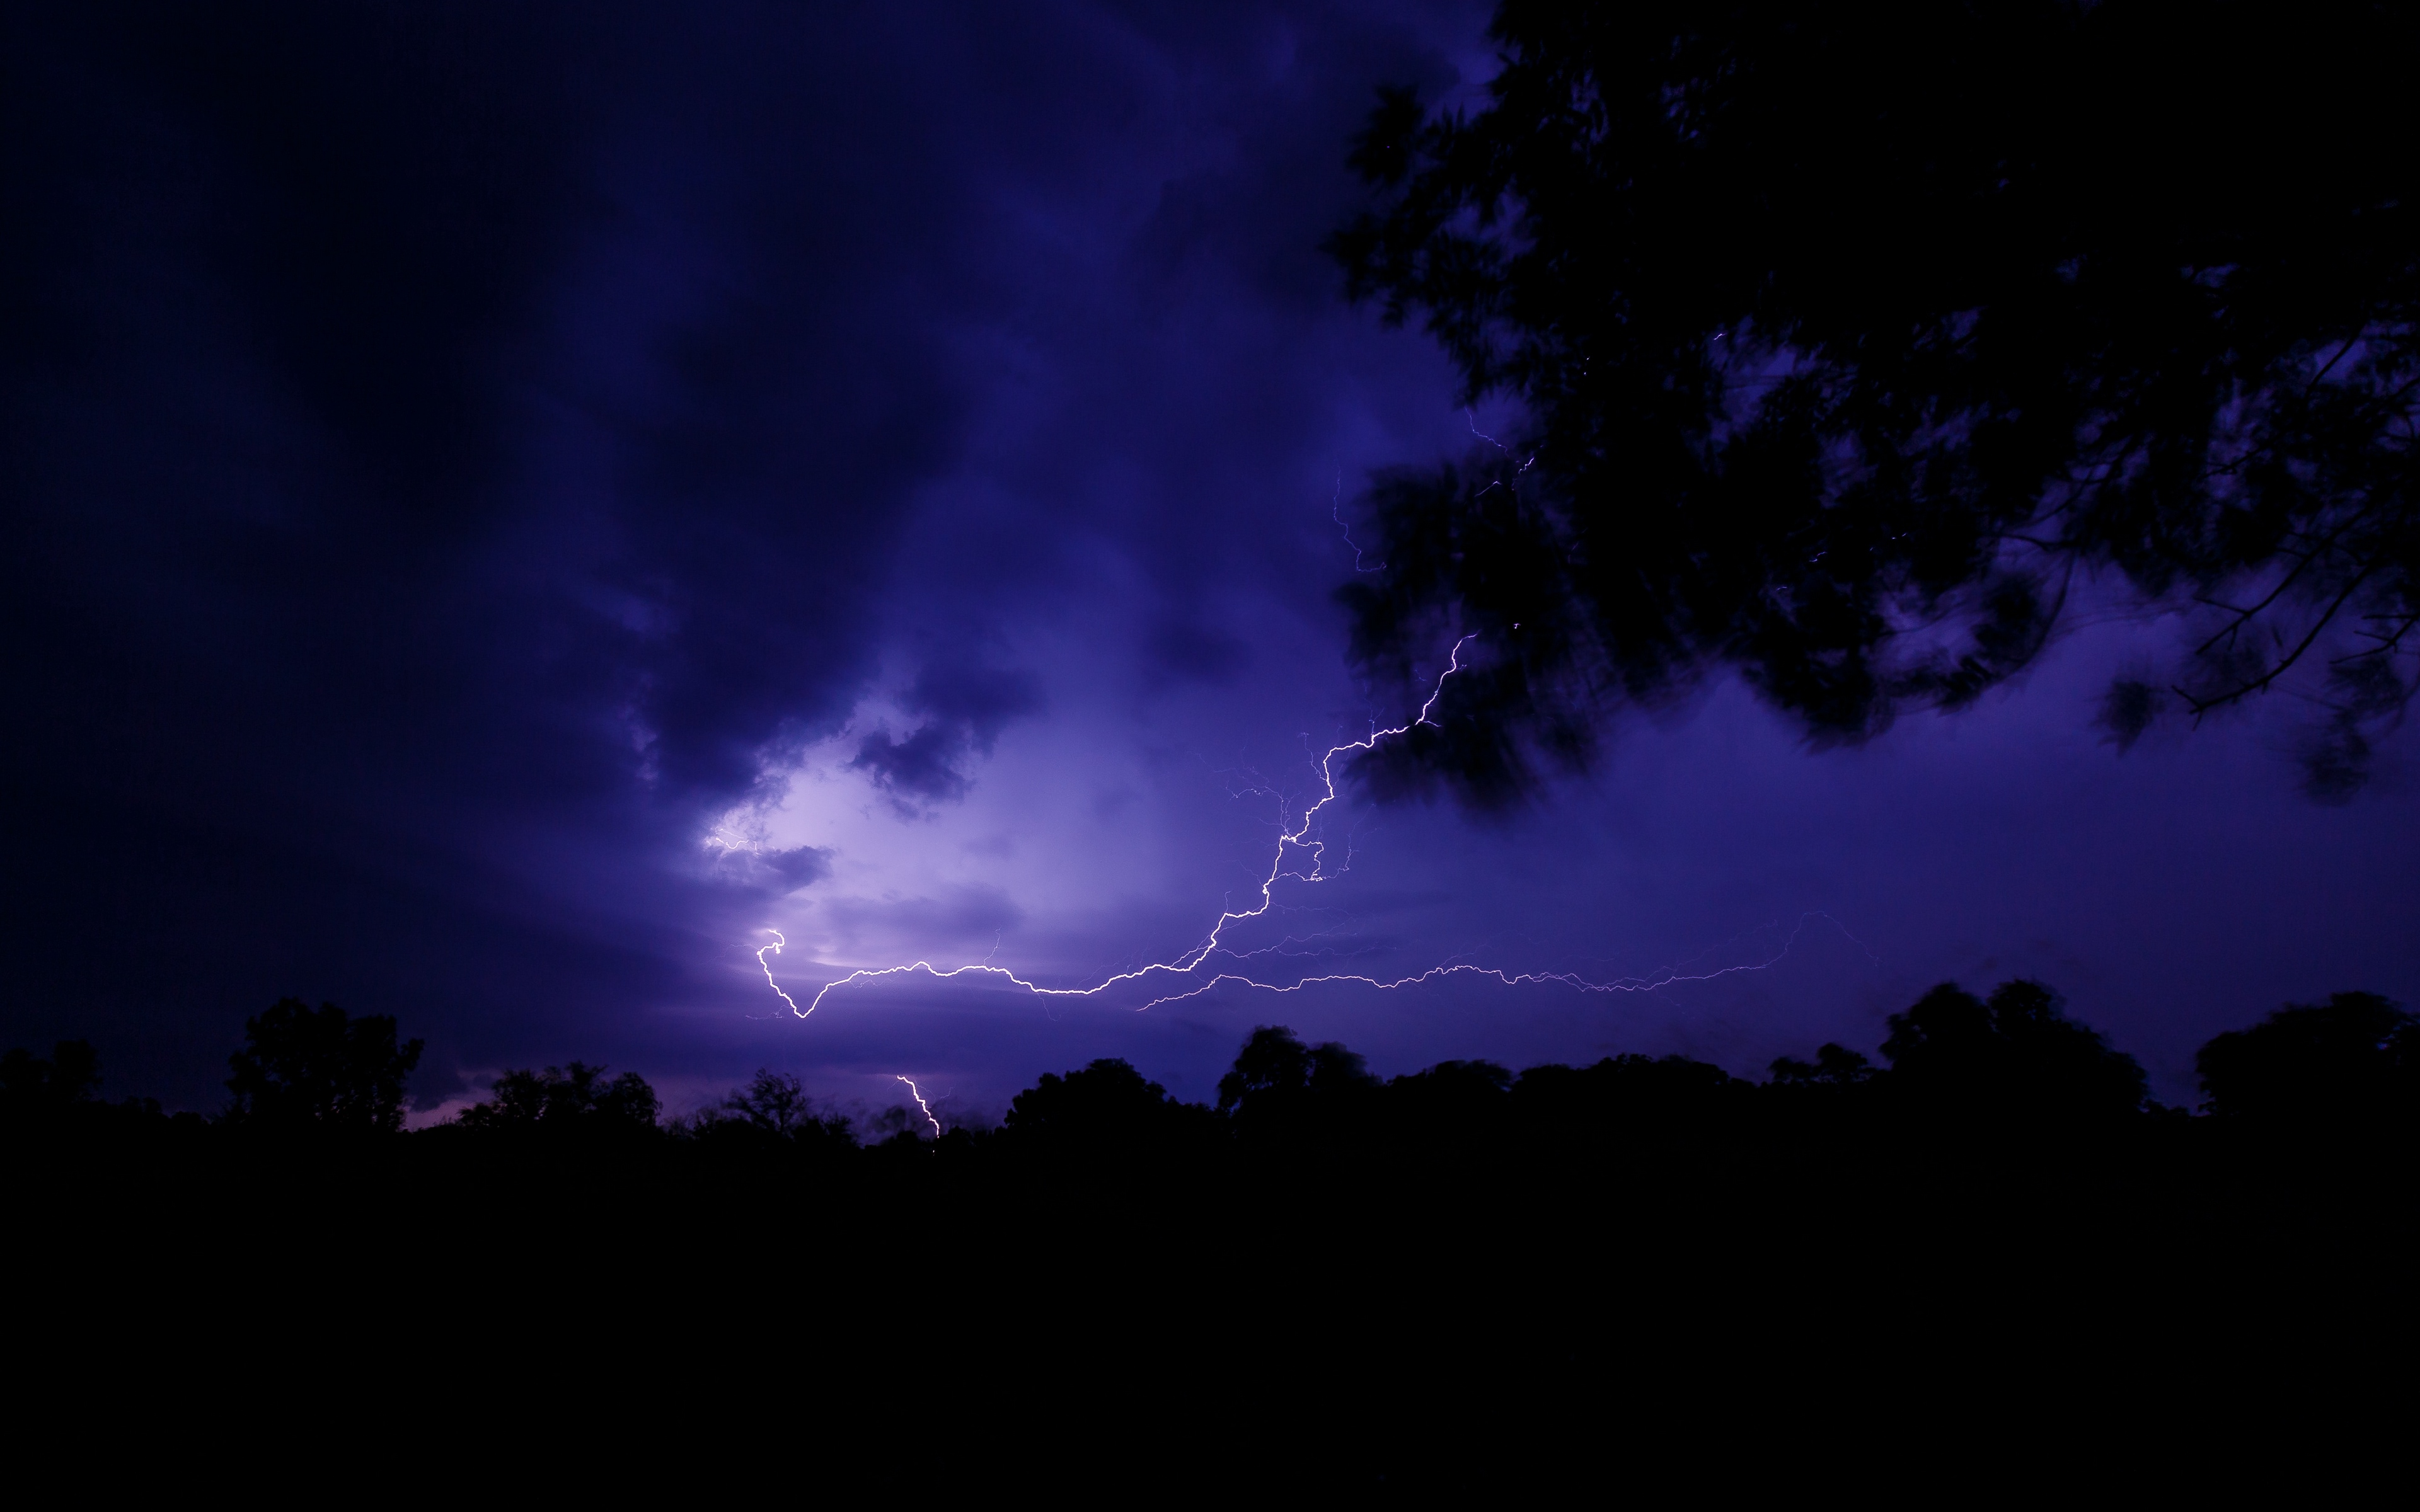 Download wallpapers 3840x2400 lightning, thunderstorm, night, dark